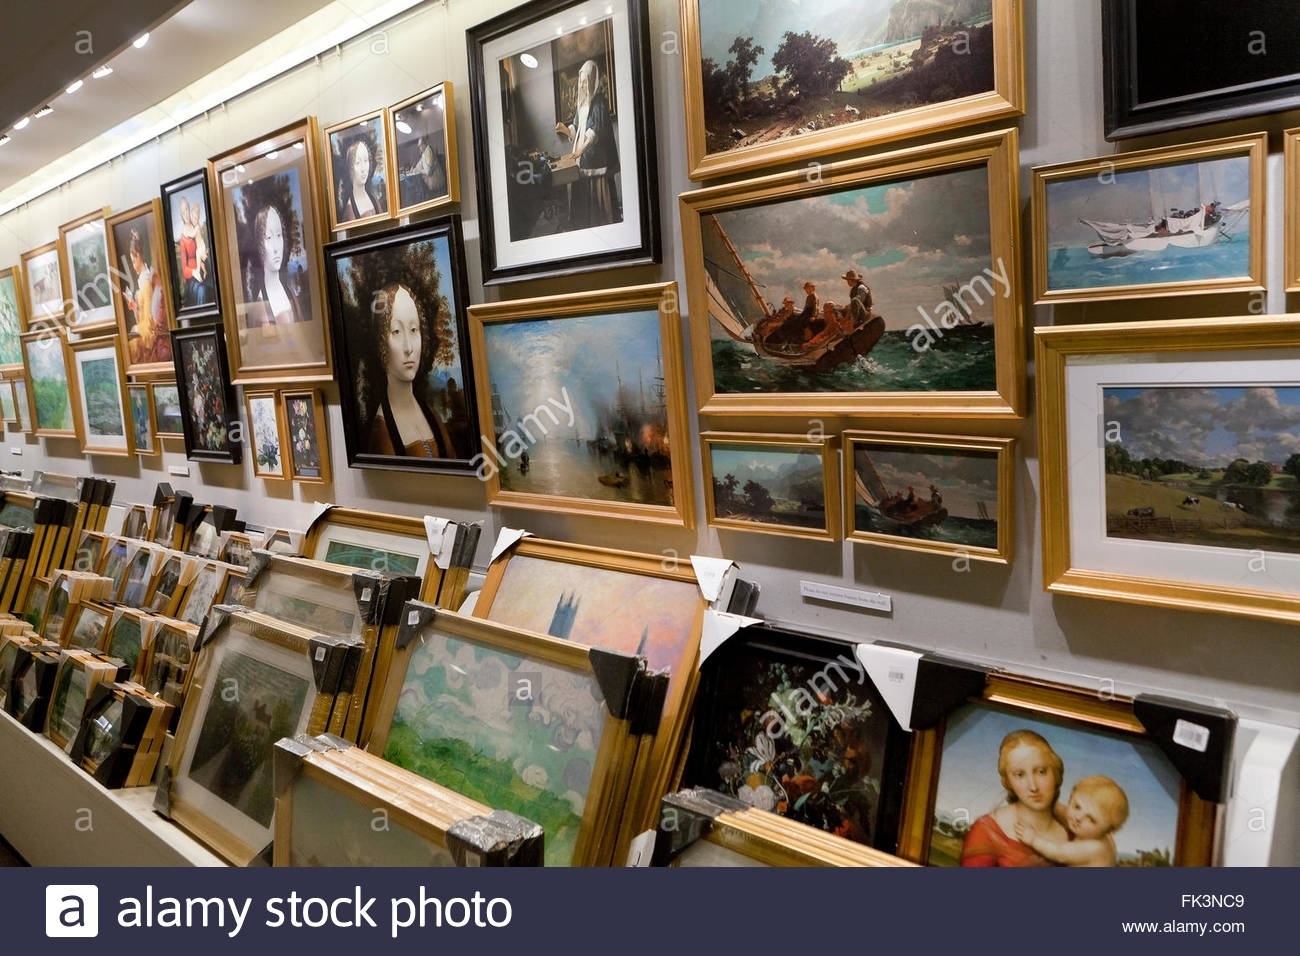 Framed Prints Of Famous Paintings - Usa Stock Photo, Royalty Free intended for Most Up-to-Date Famous Art Framed Prints